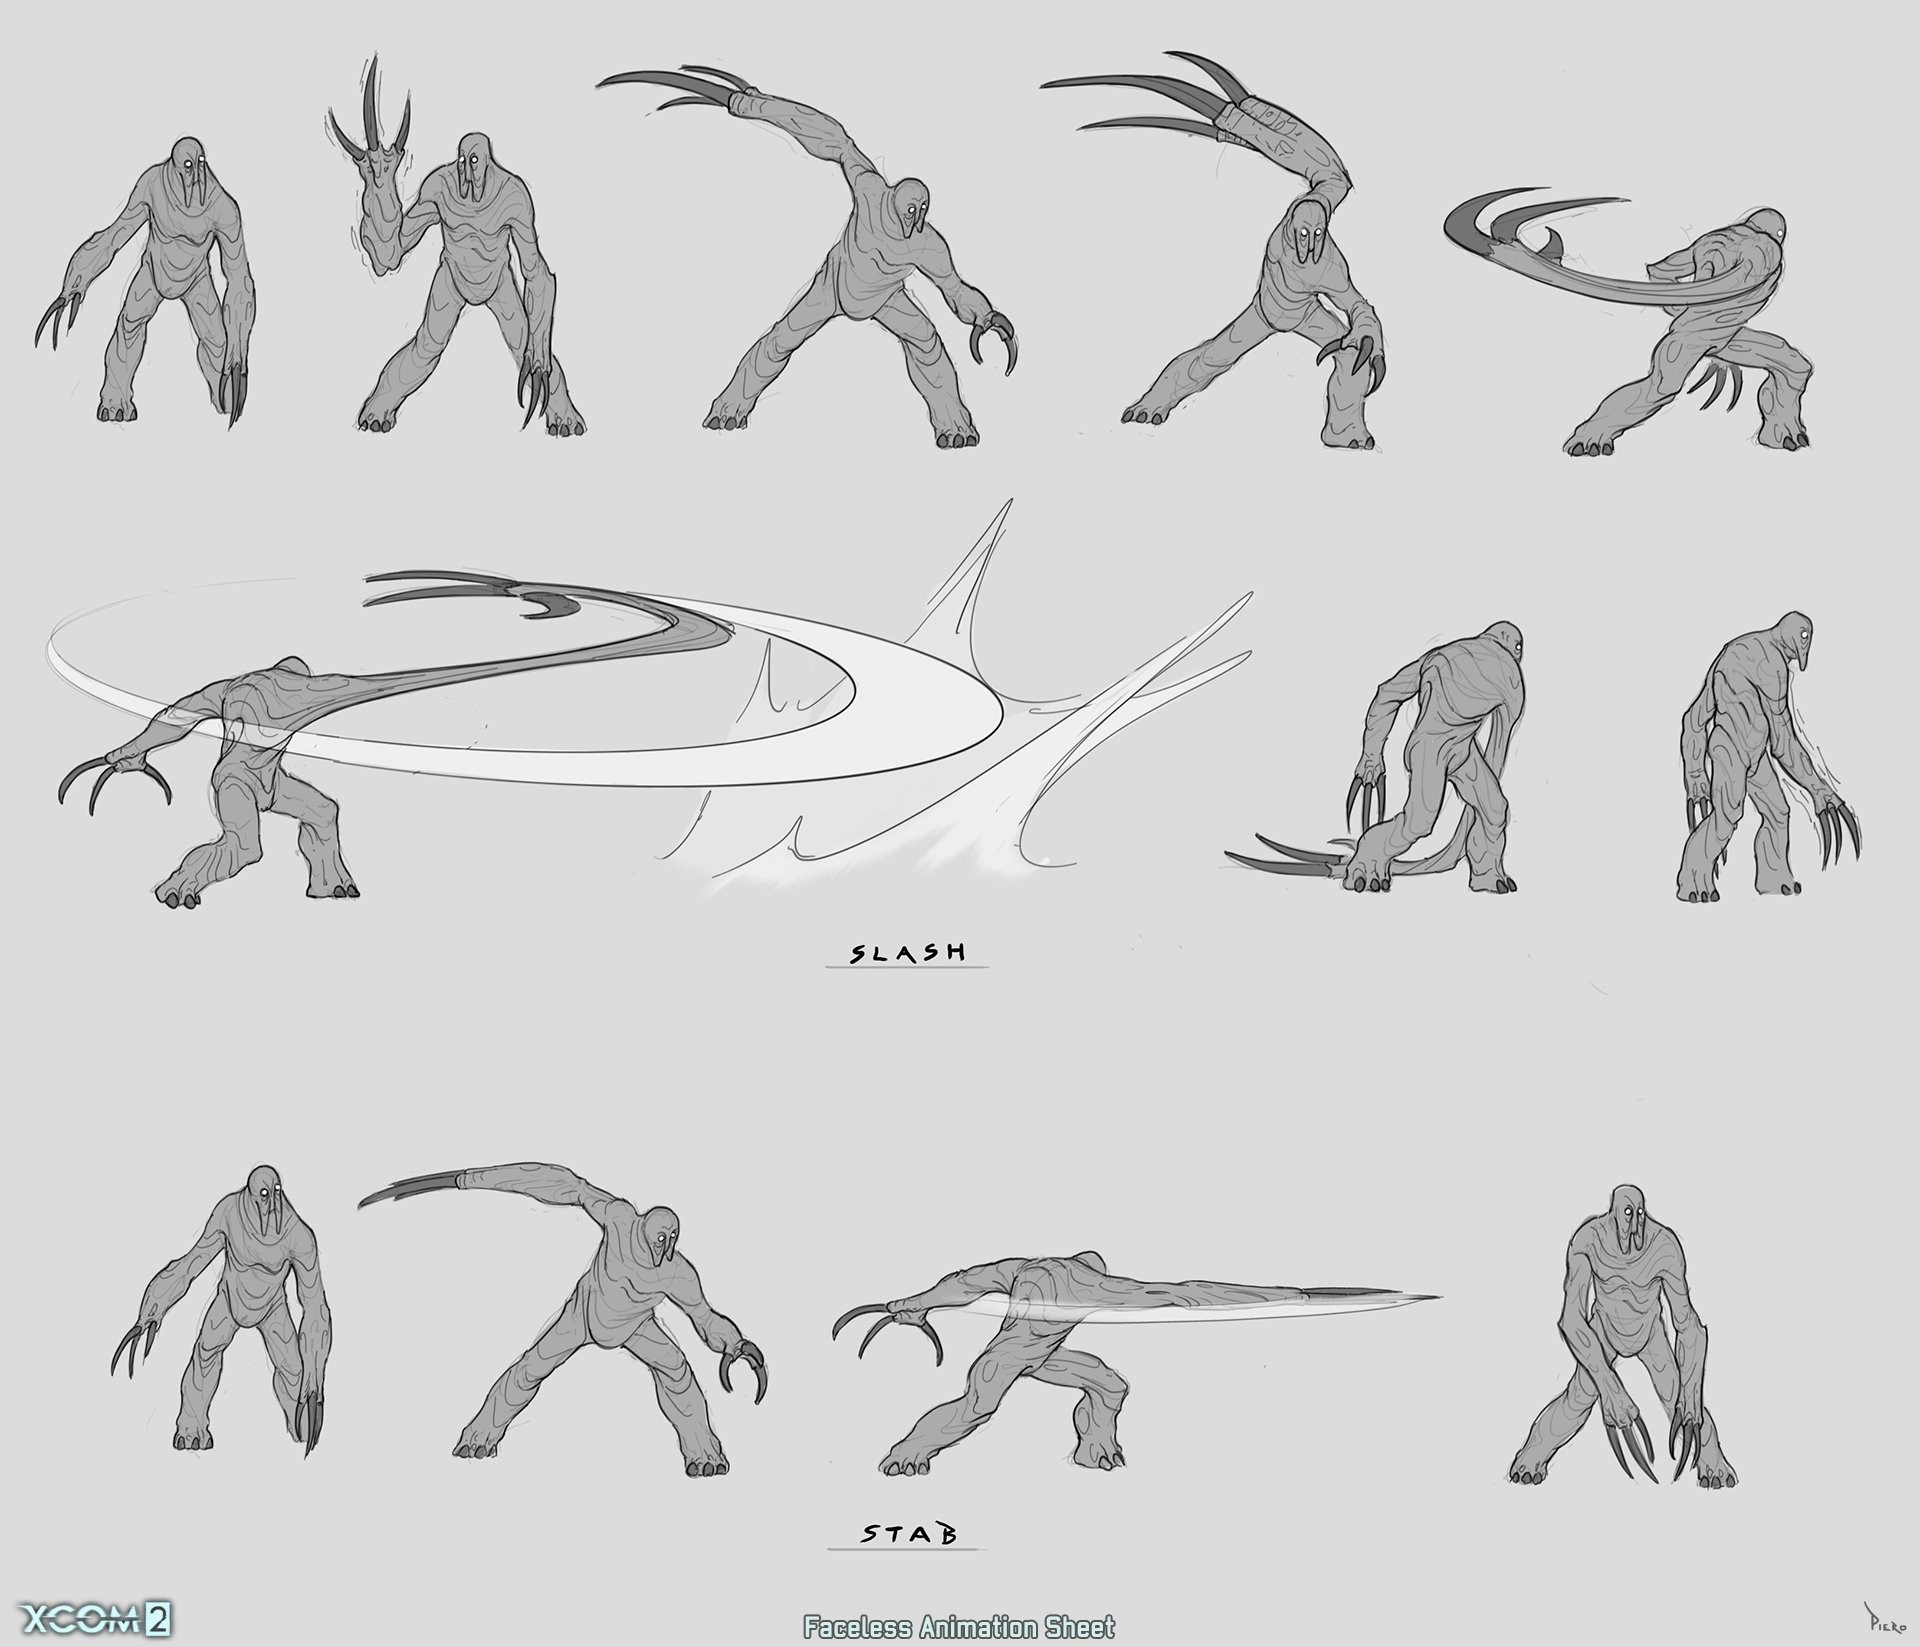 Piero macgowan xcom2 32 faceless action sketches piero macgowan